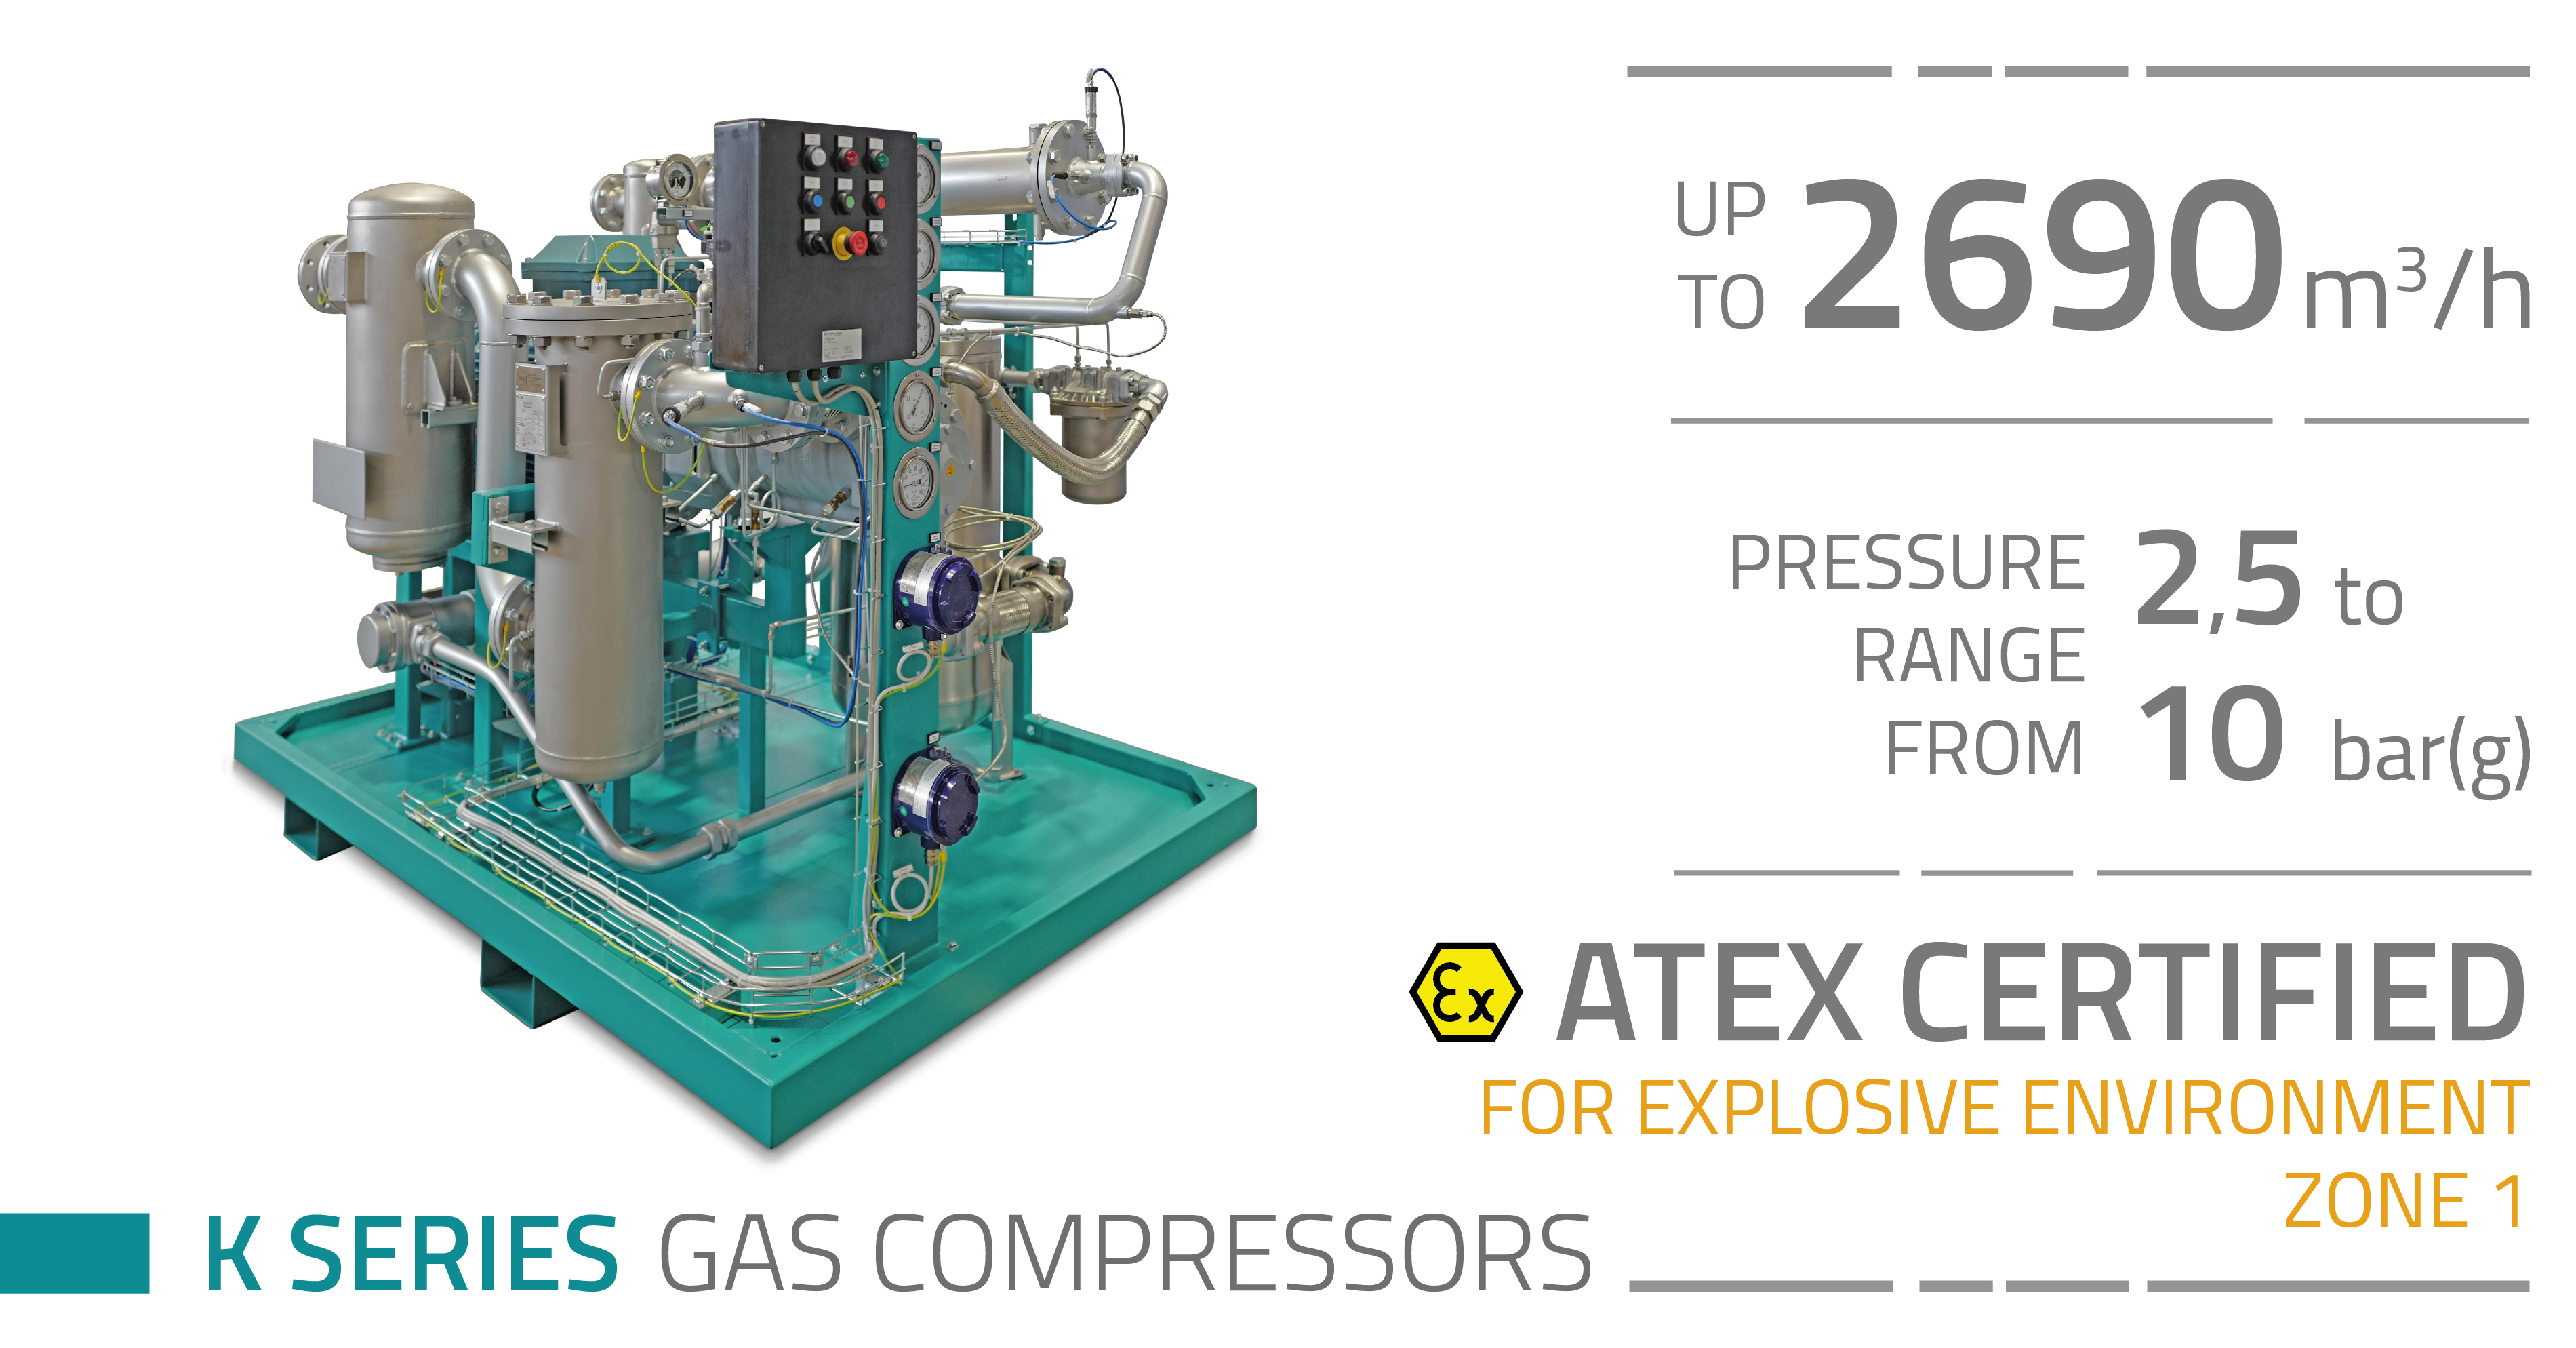 Pneumofore K Series Gas Compressors – Infographic